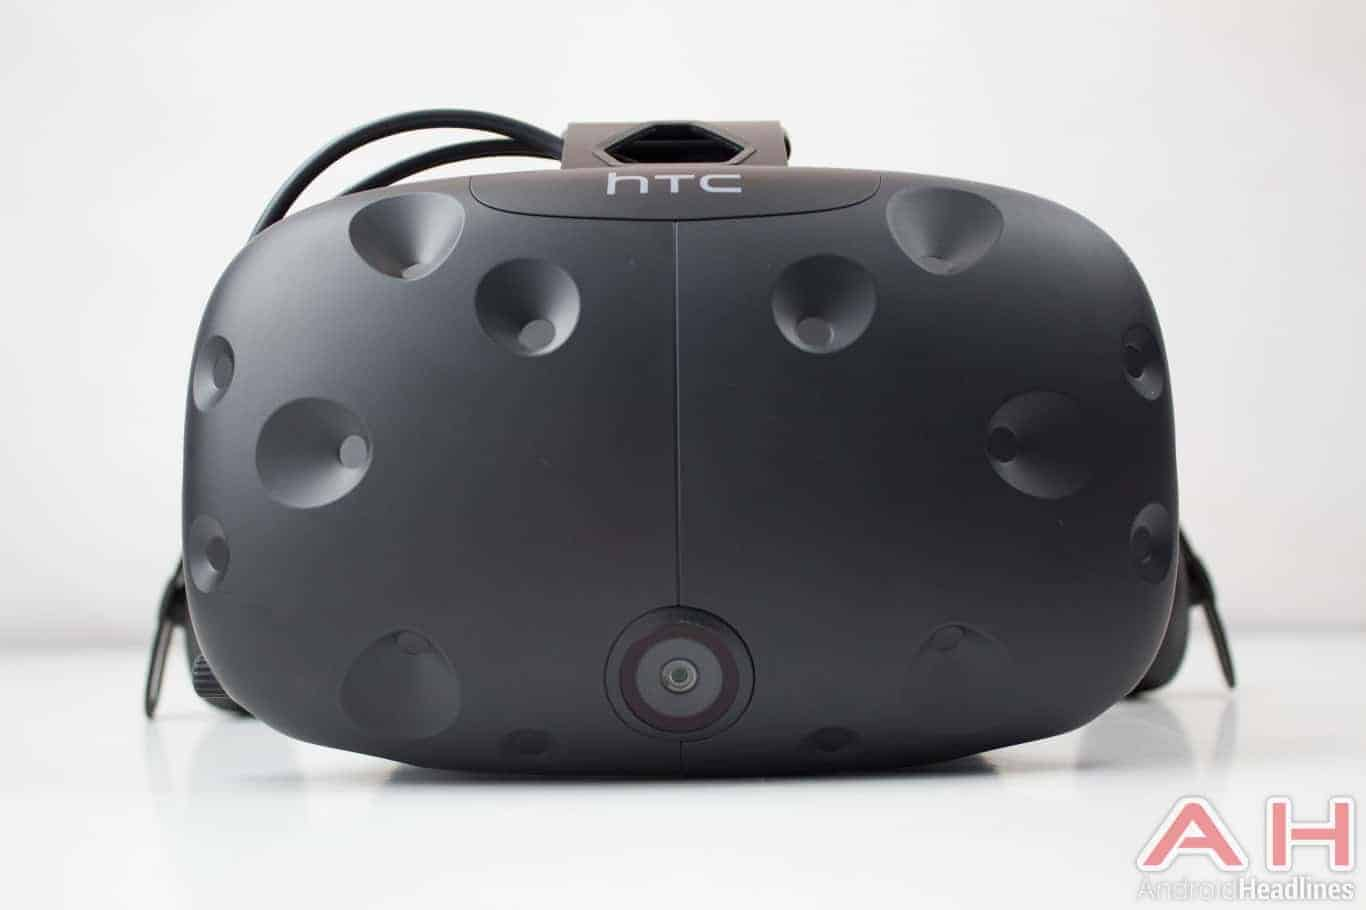 Htc Vive Europe Black Friday Deals Include Games Bonuses Fallout 4 Vr